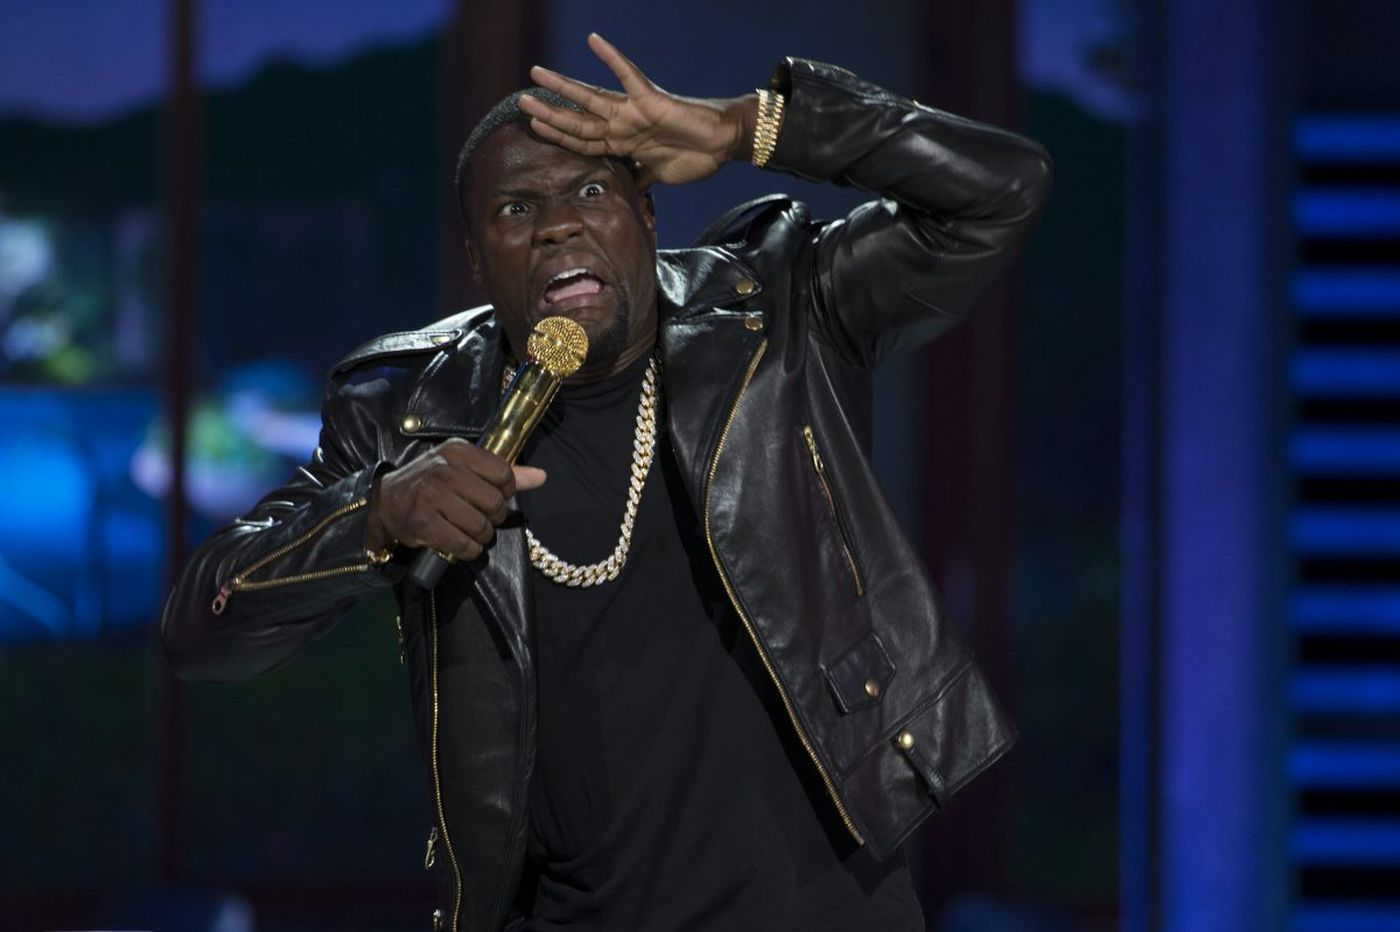 Kevin Hart to bring 'Irresponsible' tour to Philly in fall 2018